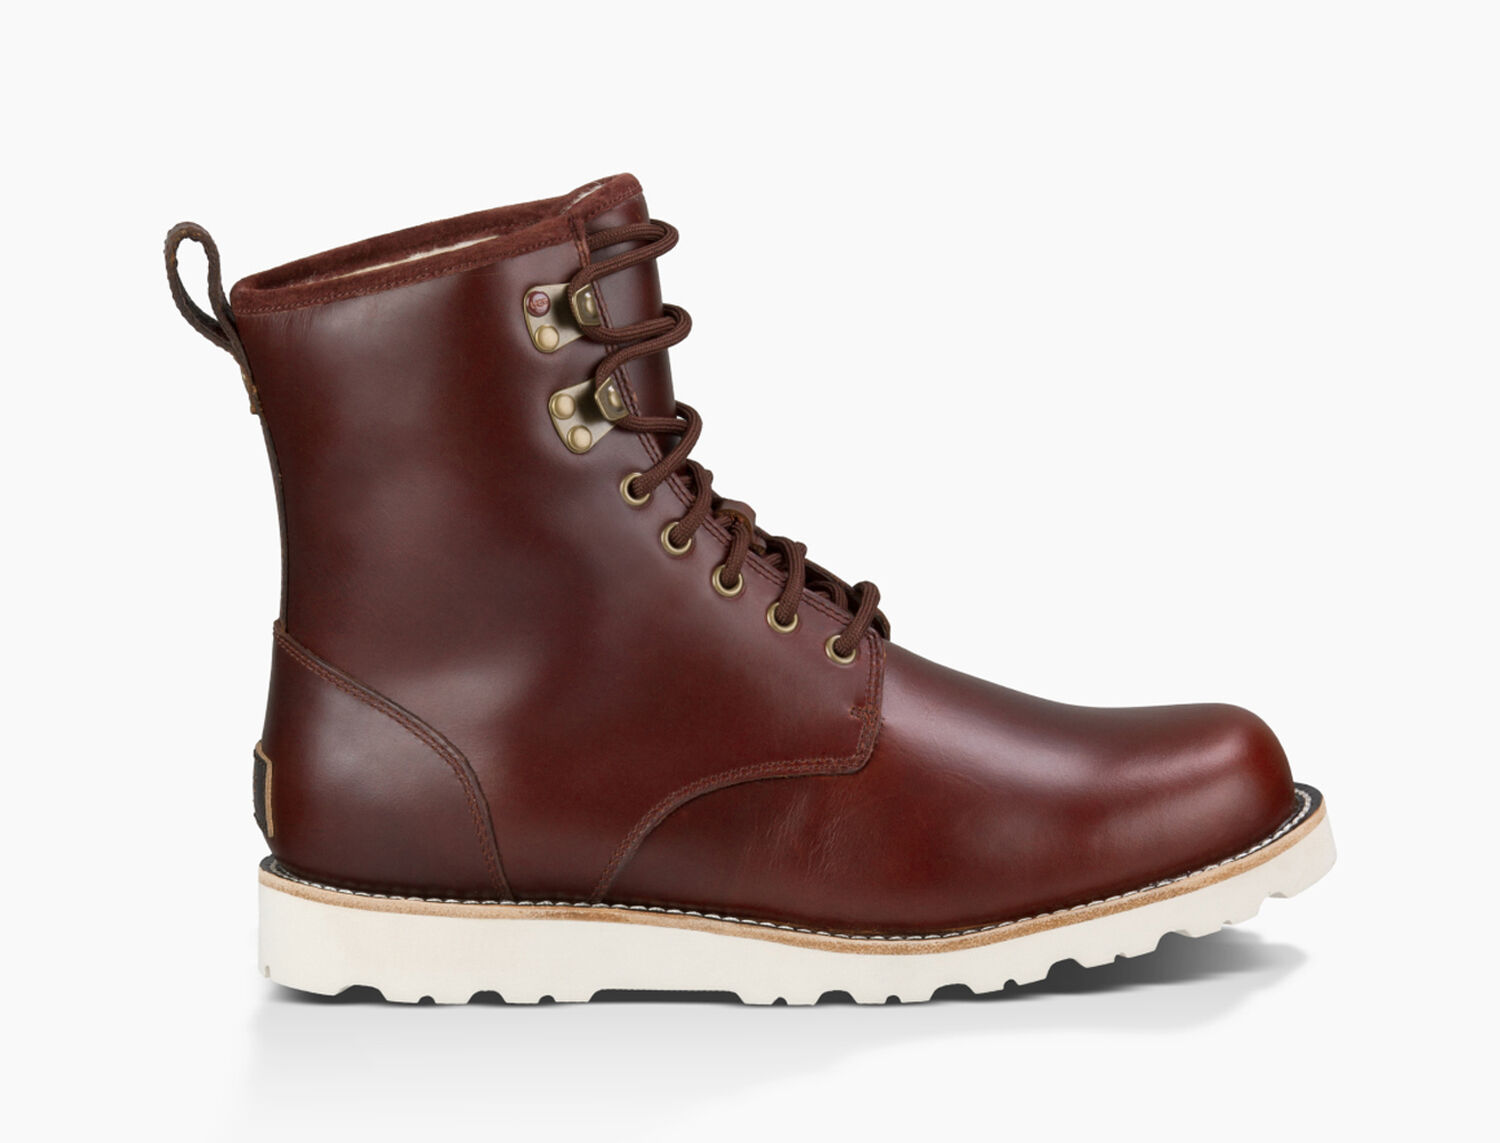 152eb16e879 Men's Share this product Hannen Boot